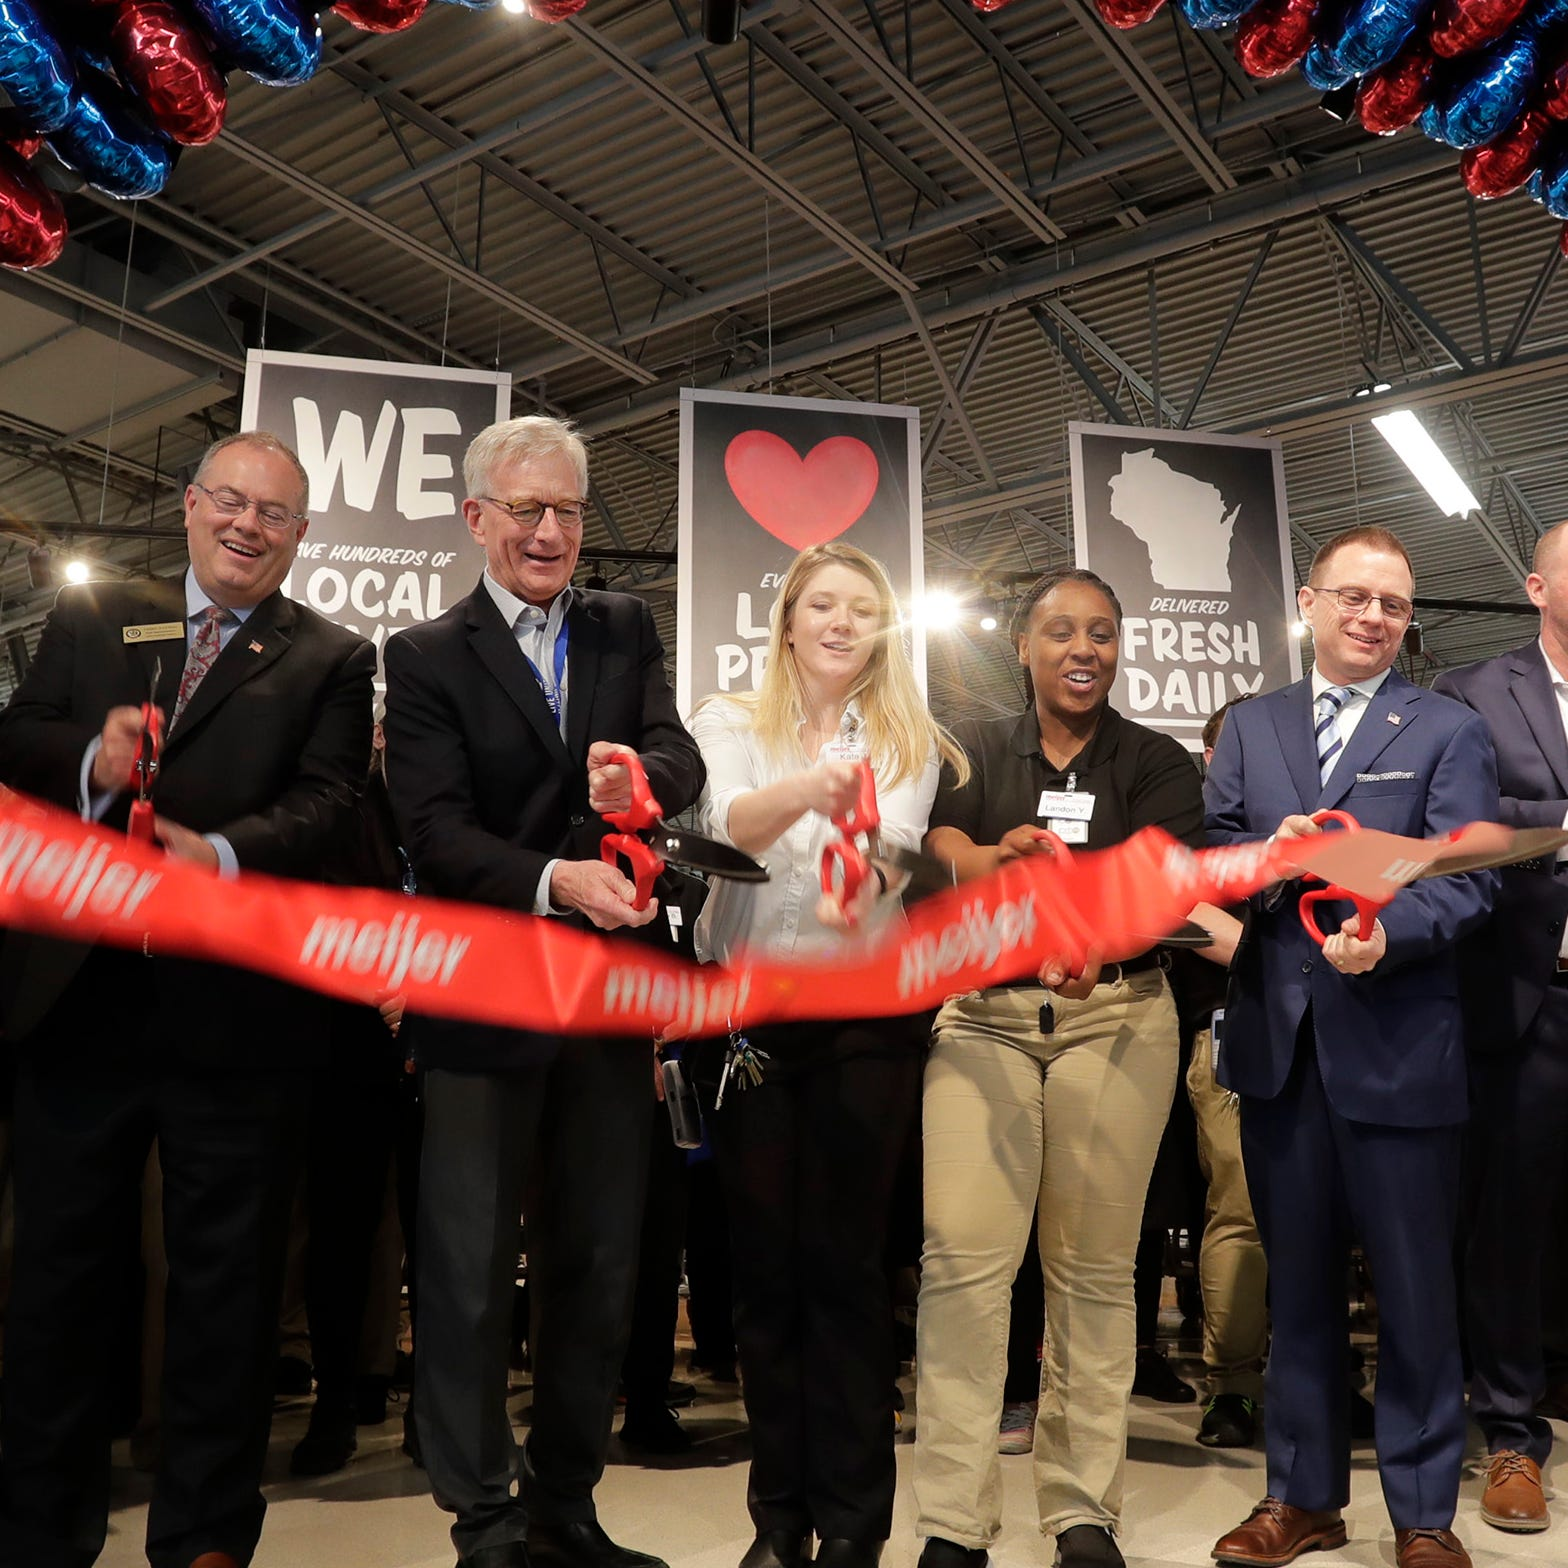 New Sheboygan Meijer store opens offering pharmacy, bank, Starbucks and more | Streetwise